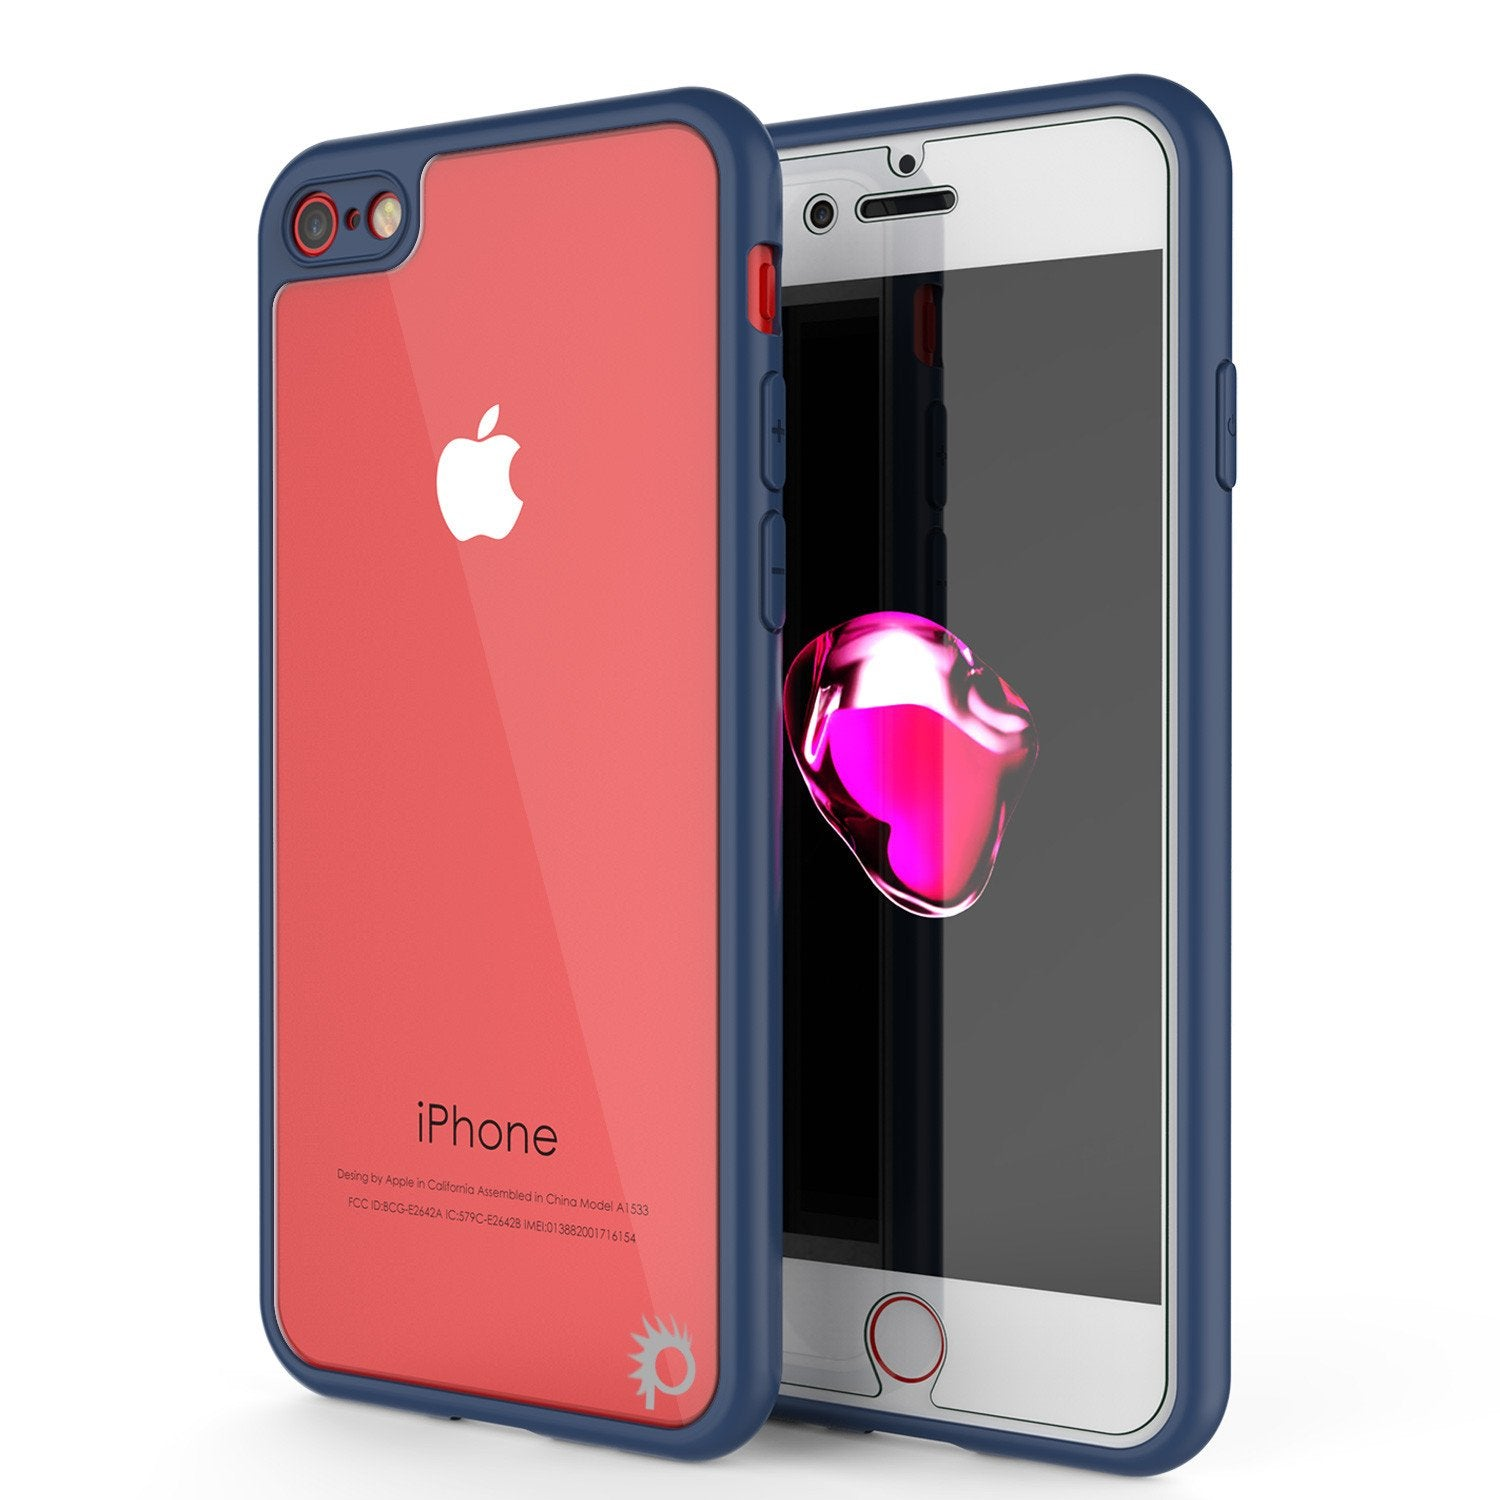 iPhone 8 Case [MASK Series] [NAVY] Full Body Hybrid Dual Layer TPU Cover W/ protective Tempered Glass Screen Protector